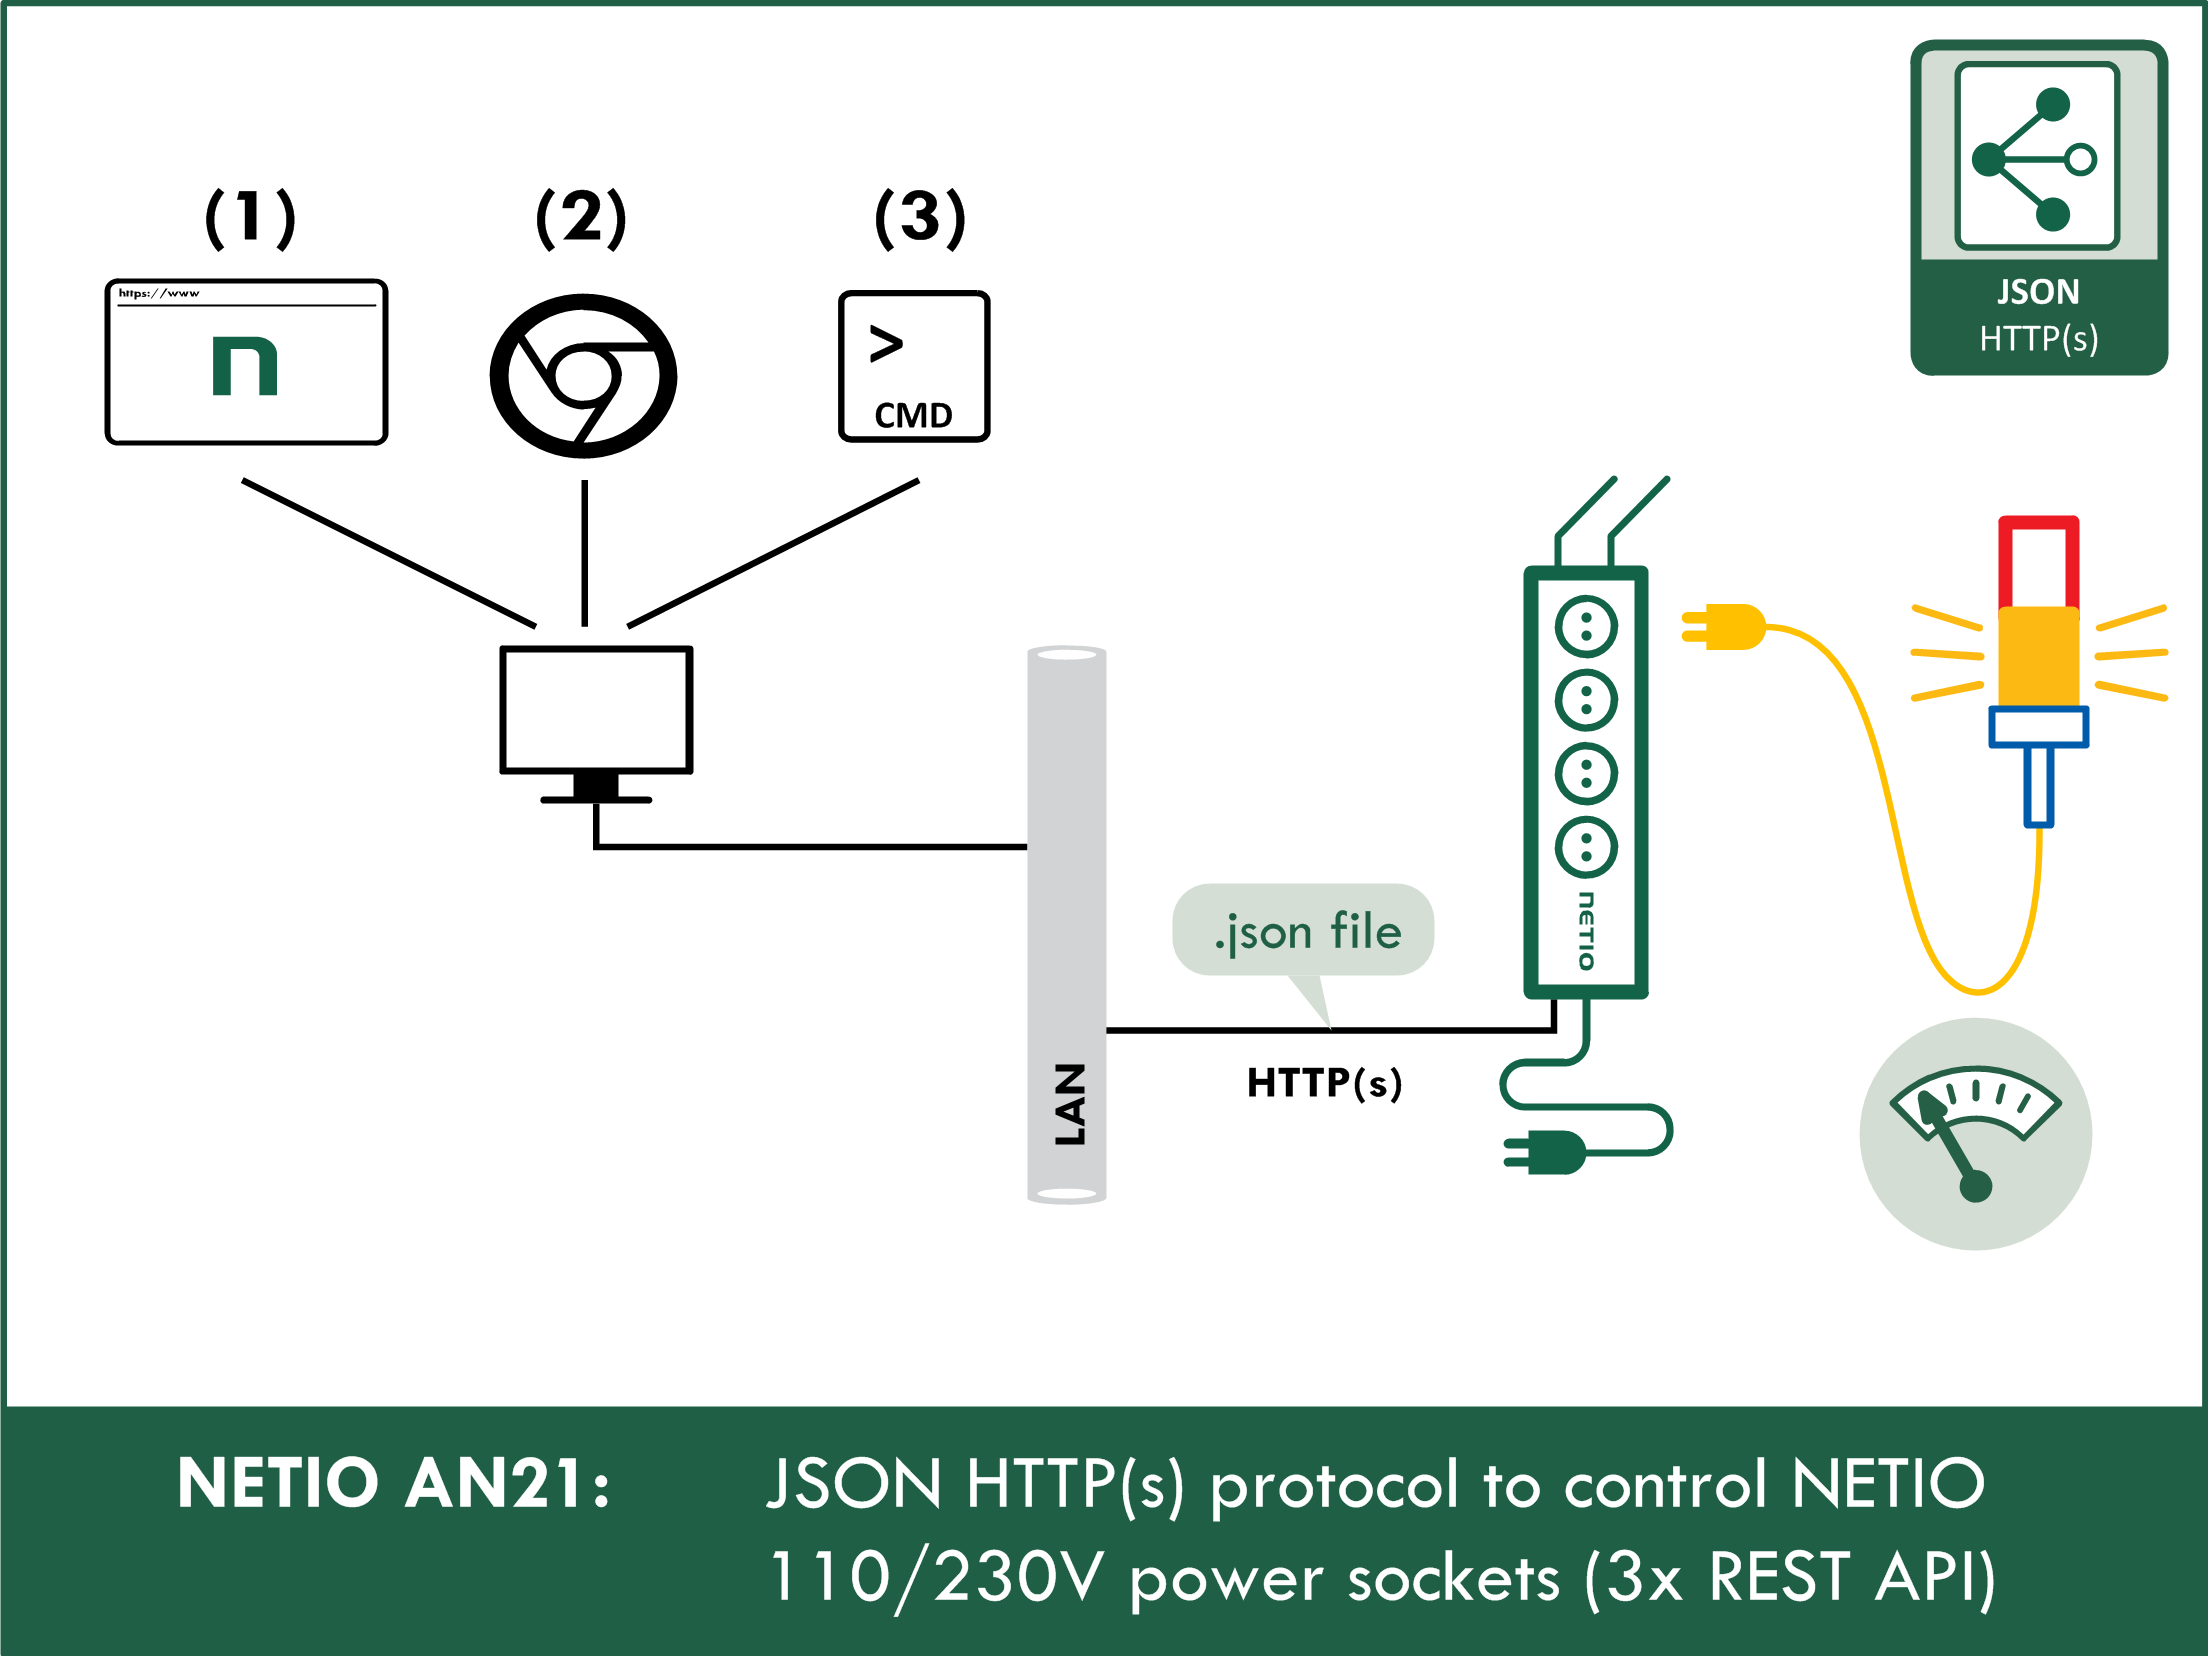 JSON HTTPs protocol to control NETIO power sockets